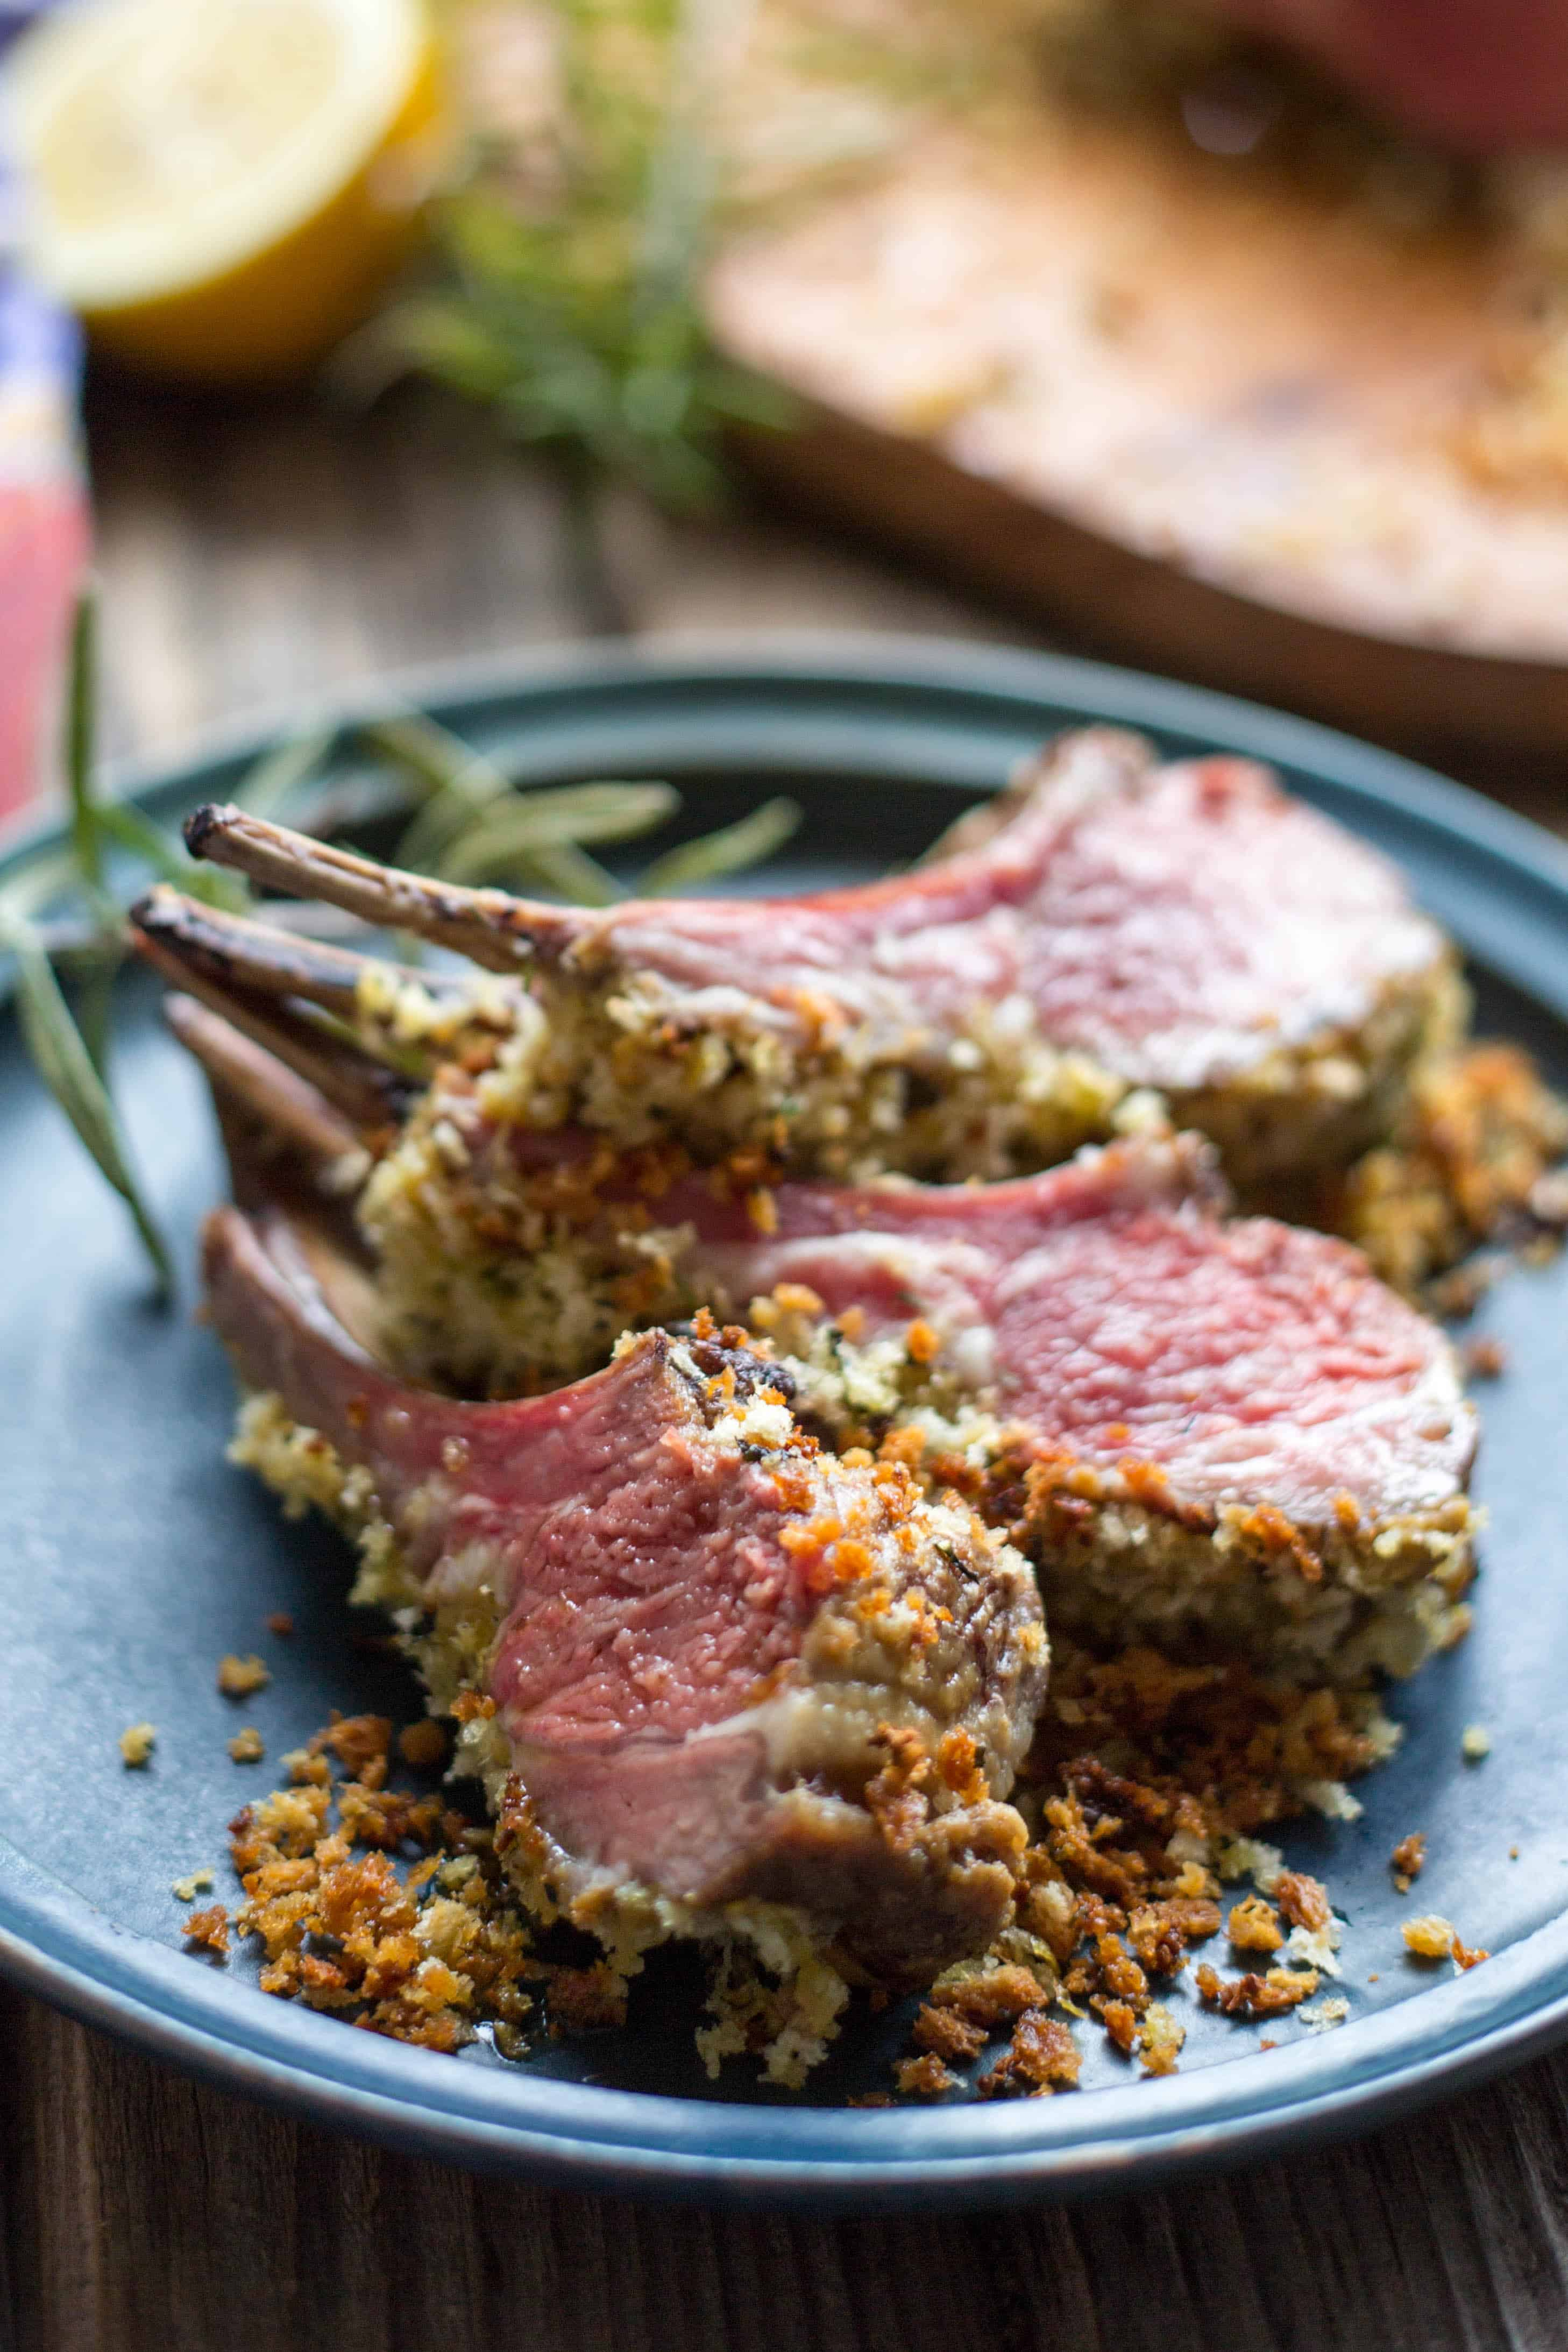 Three Dijon crusted lamb chops set on a blue dinner plate with a sprig of fresh rosemary.